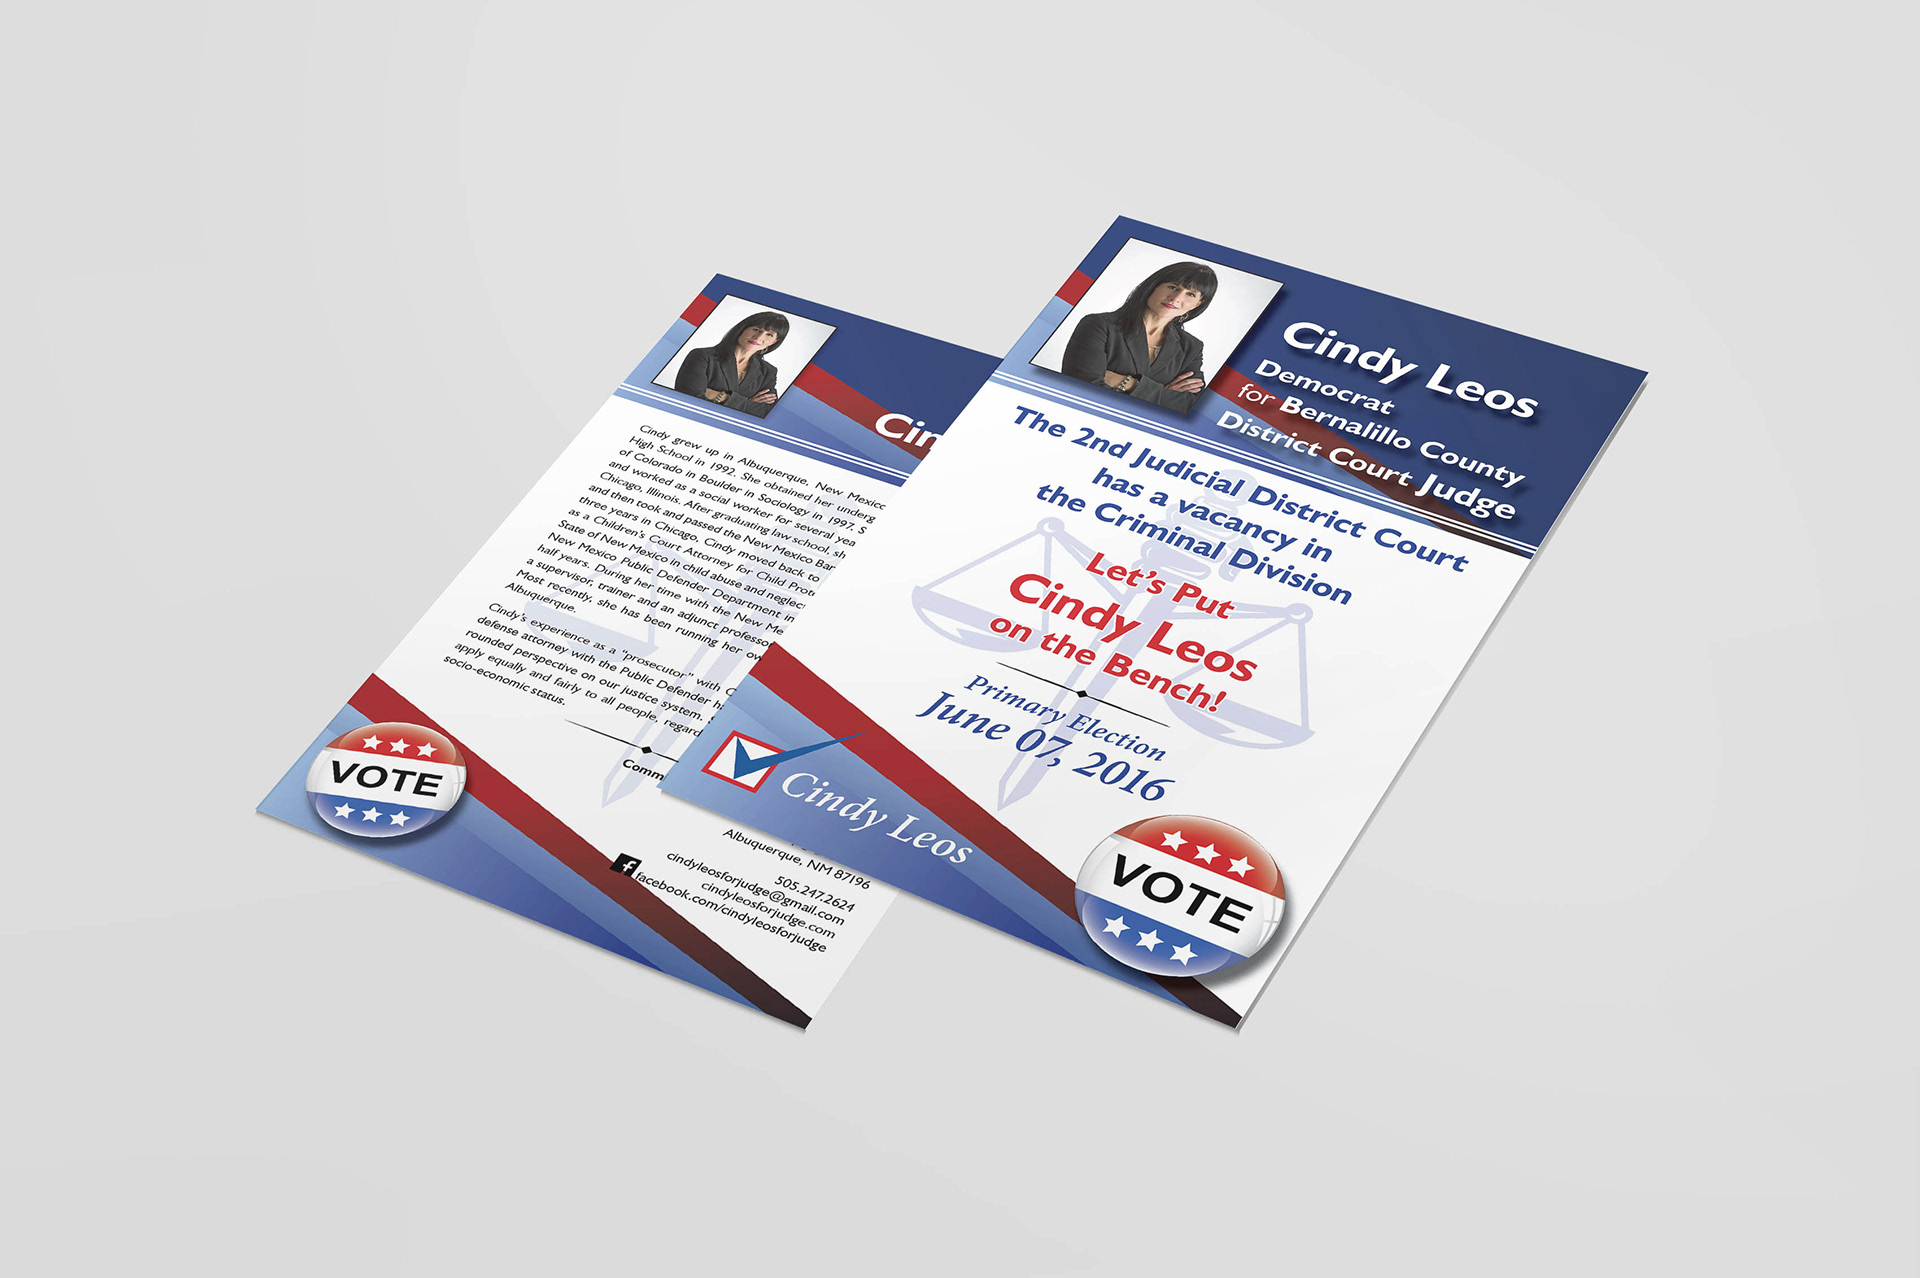 Leslie Reilly - Campaign Materials for a Local Candidate